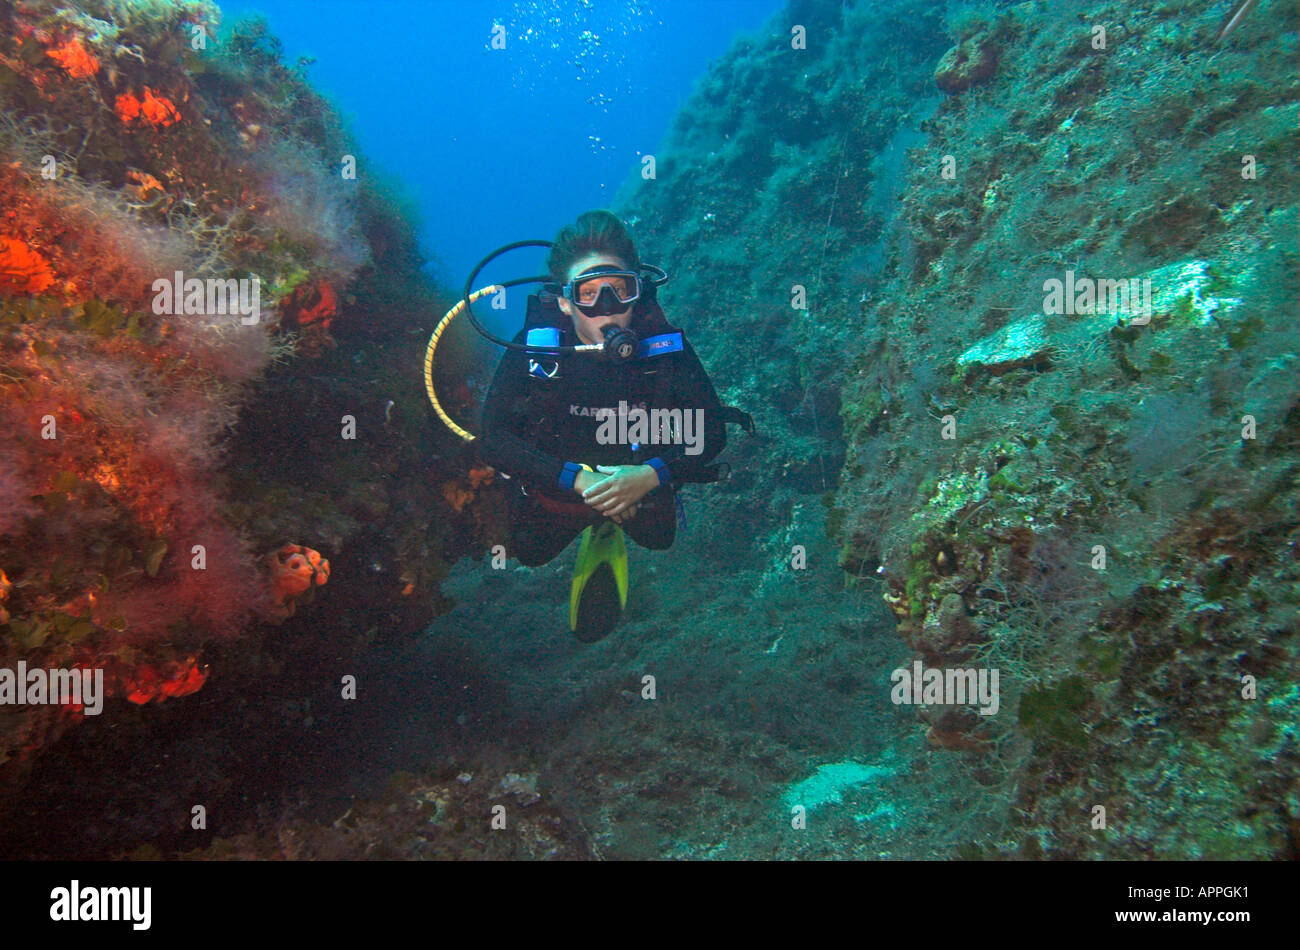 Carte Snorkeling Crete.Scuba Diver In Gully On The Island Of Crete Greece Stock